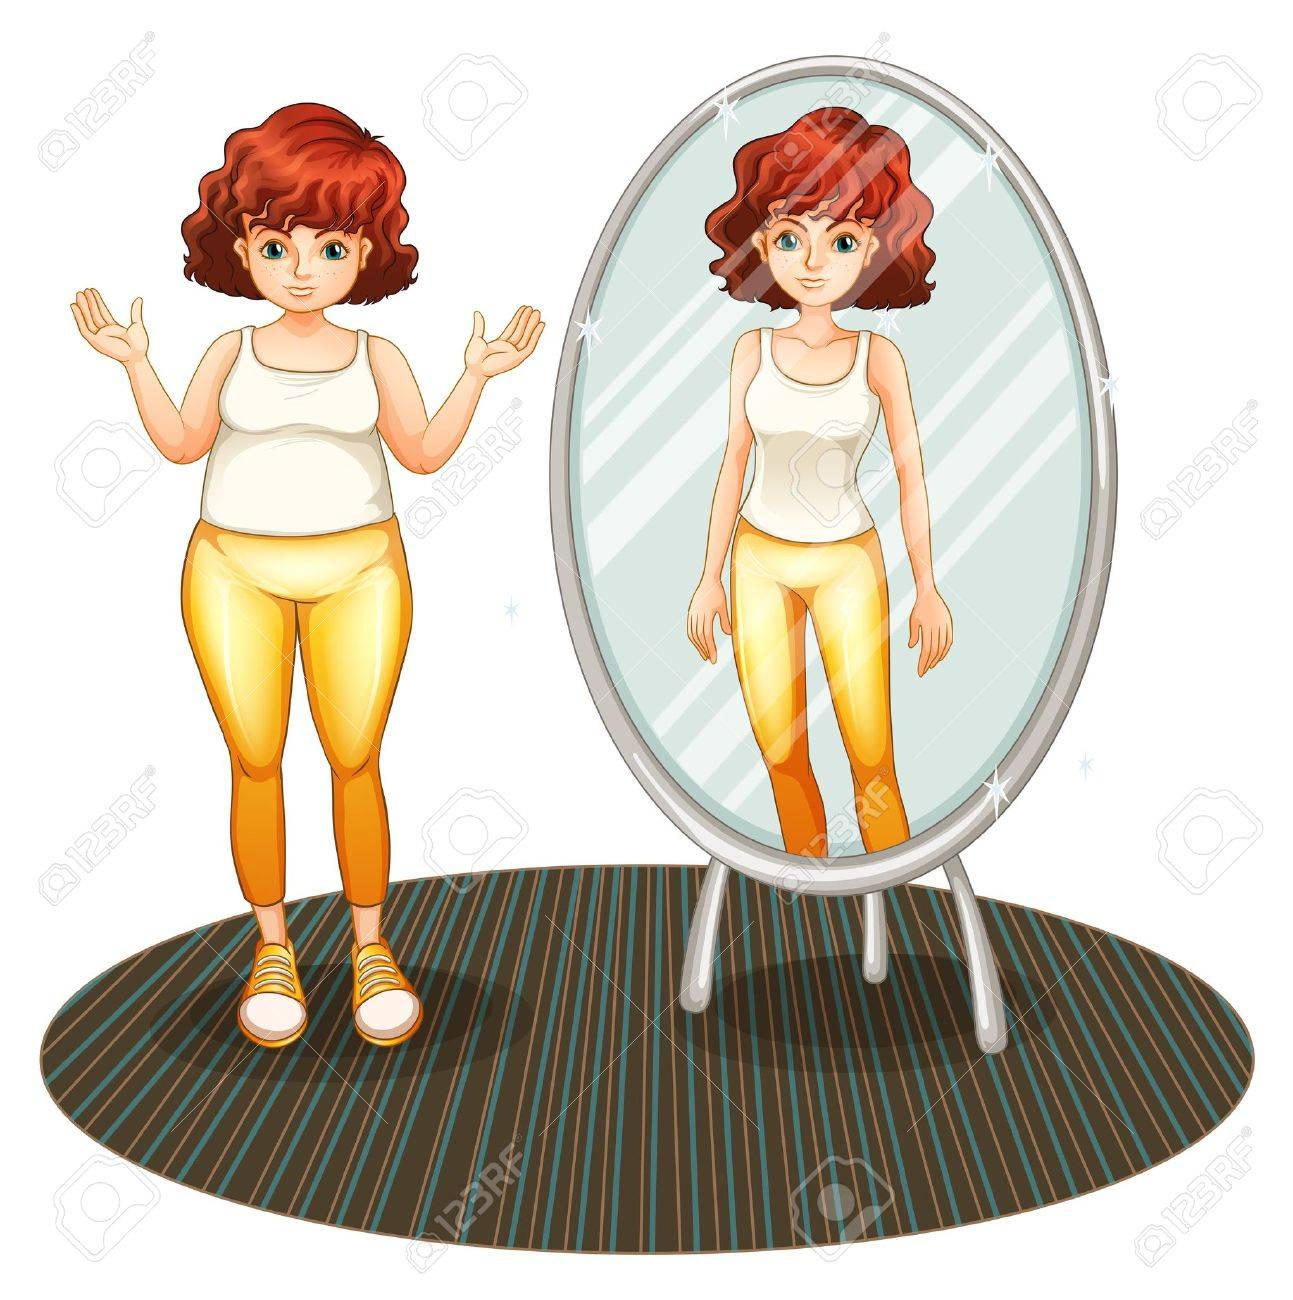 Illustration of a fat girl and her skinny reflection on a white background Stock Vector - 20517982